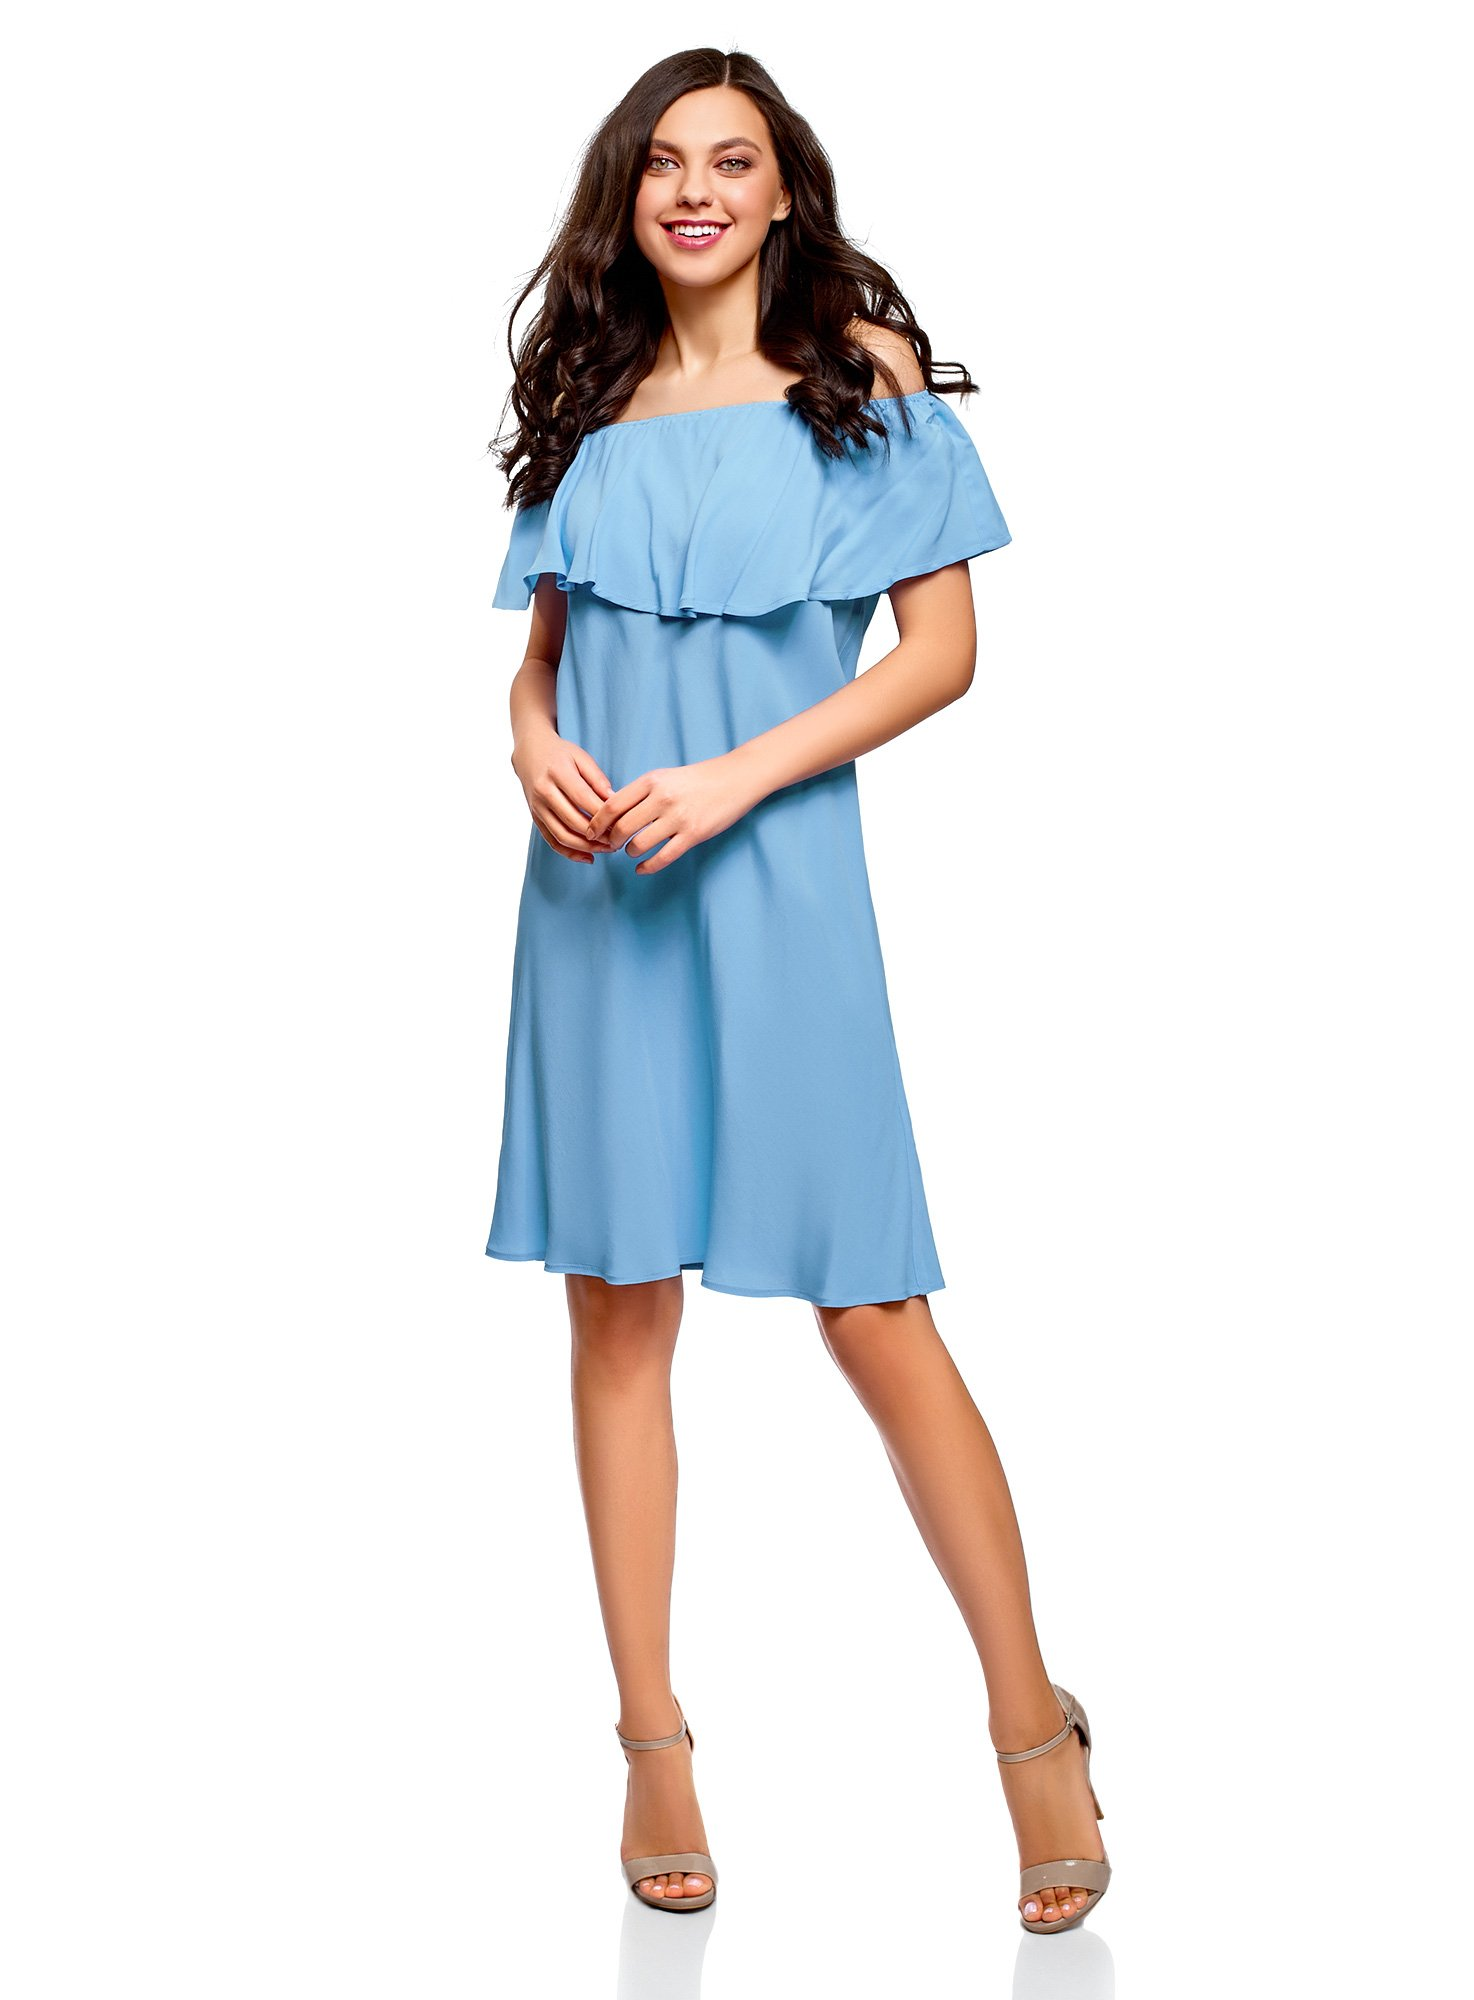 Available at Amazon: oodji Ultra Women's Off-Shoulder Viscose Dress